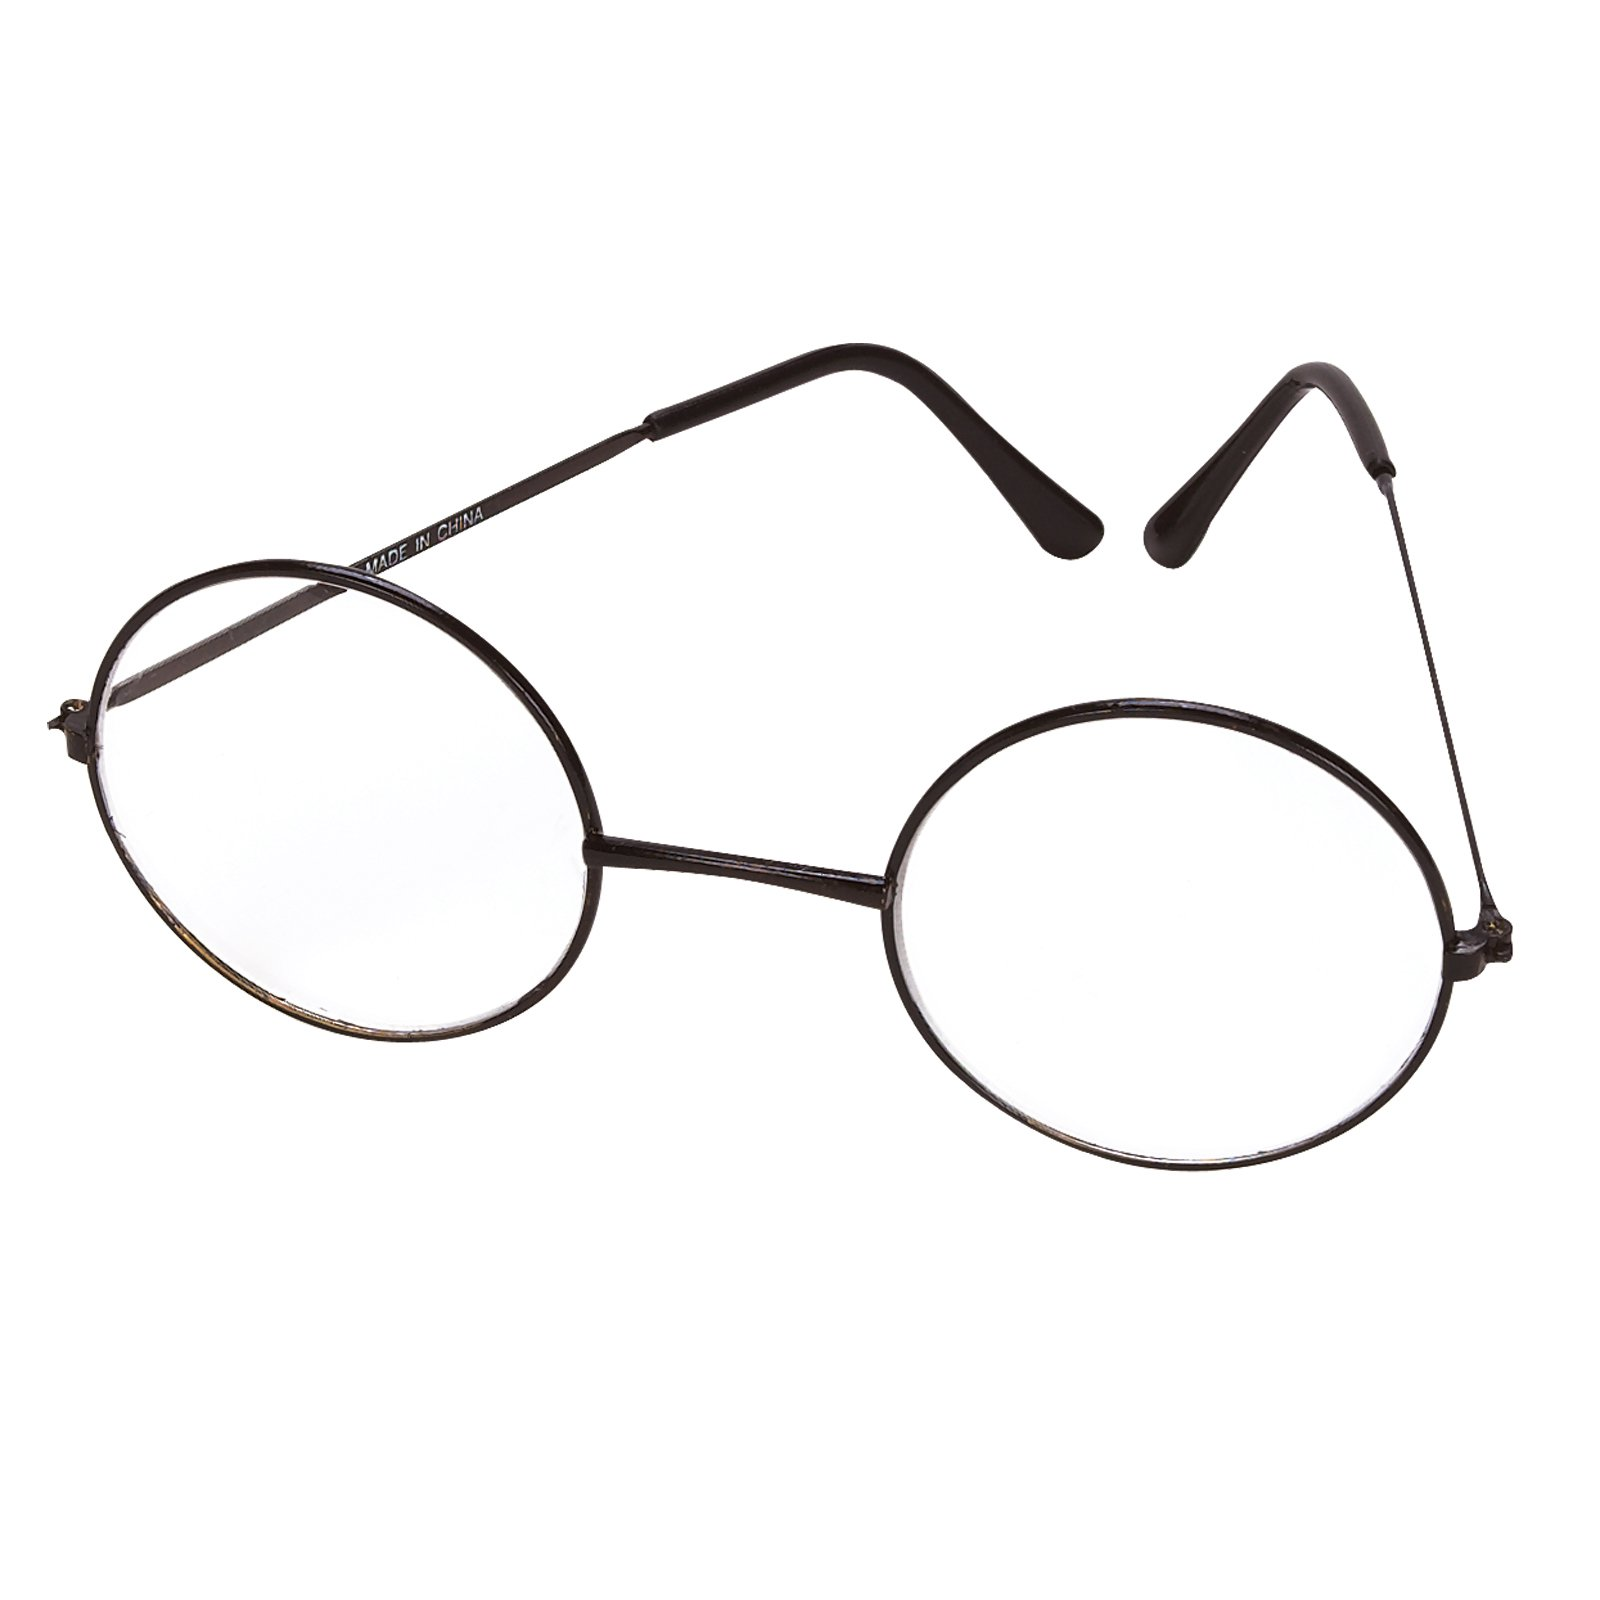 Free Vision Screening Cliparts Download Free Clip Art